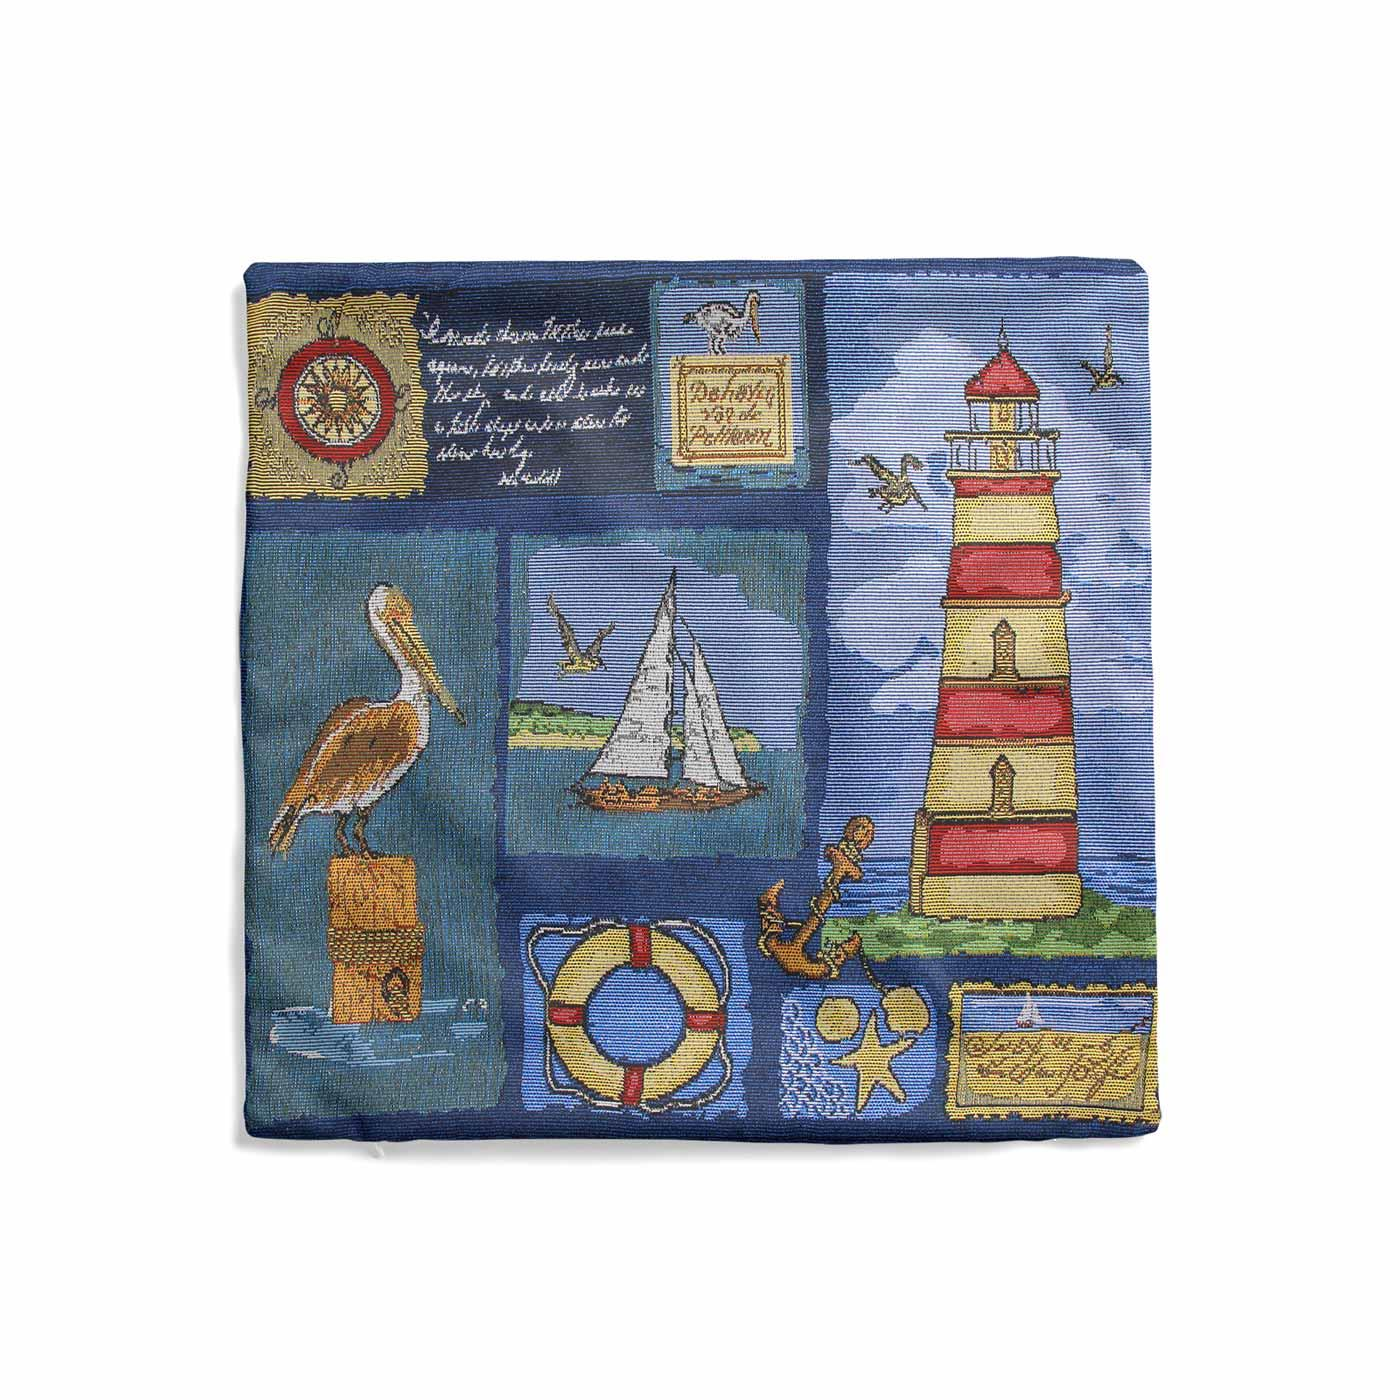 Tapestry-Cushion-Covers-Vintage-Pillow-Cover-Collection-18-034-45cm-Filled-Cushions thumbnail 164